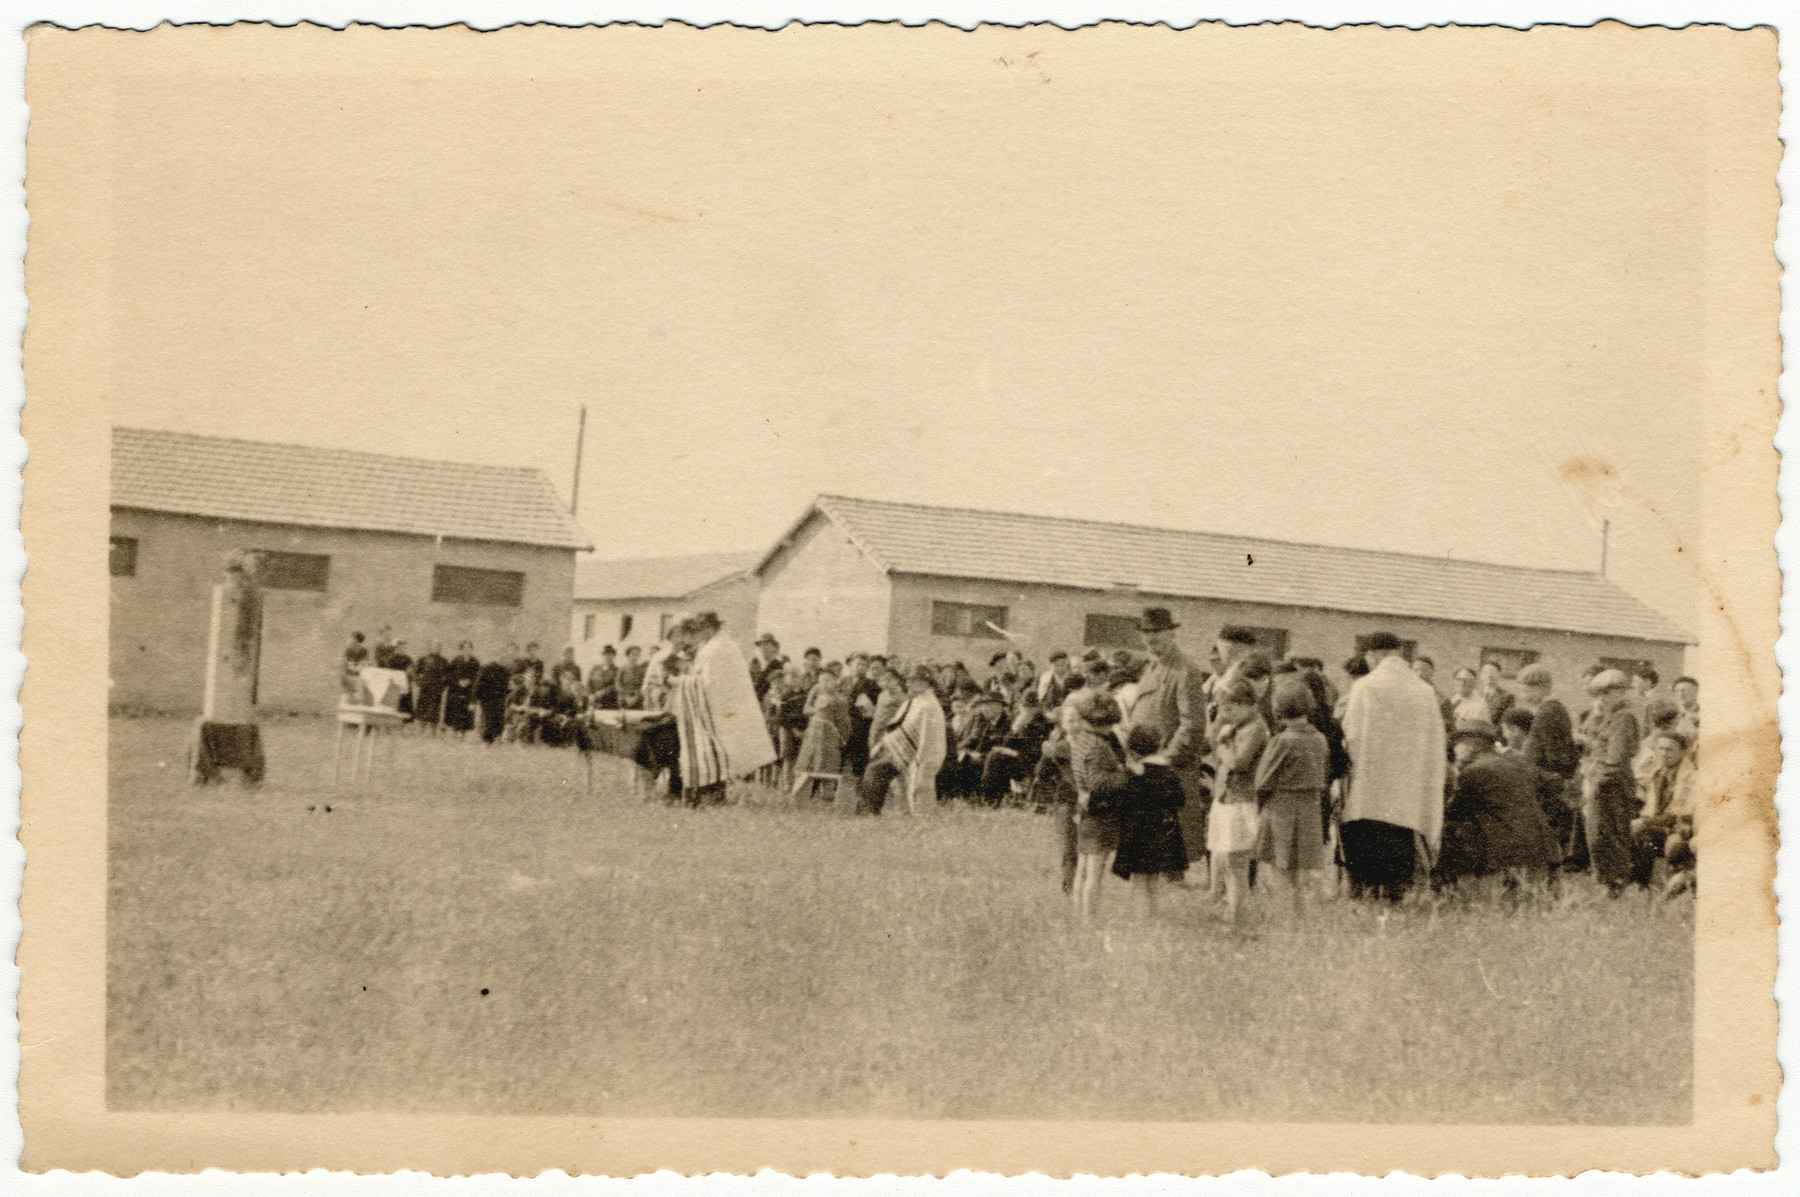 Jewish prisoners at the Rivesaltes internment camp in southern France hold an outdoor prayer service.